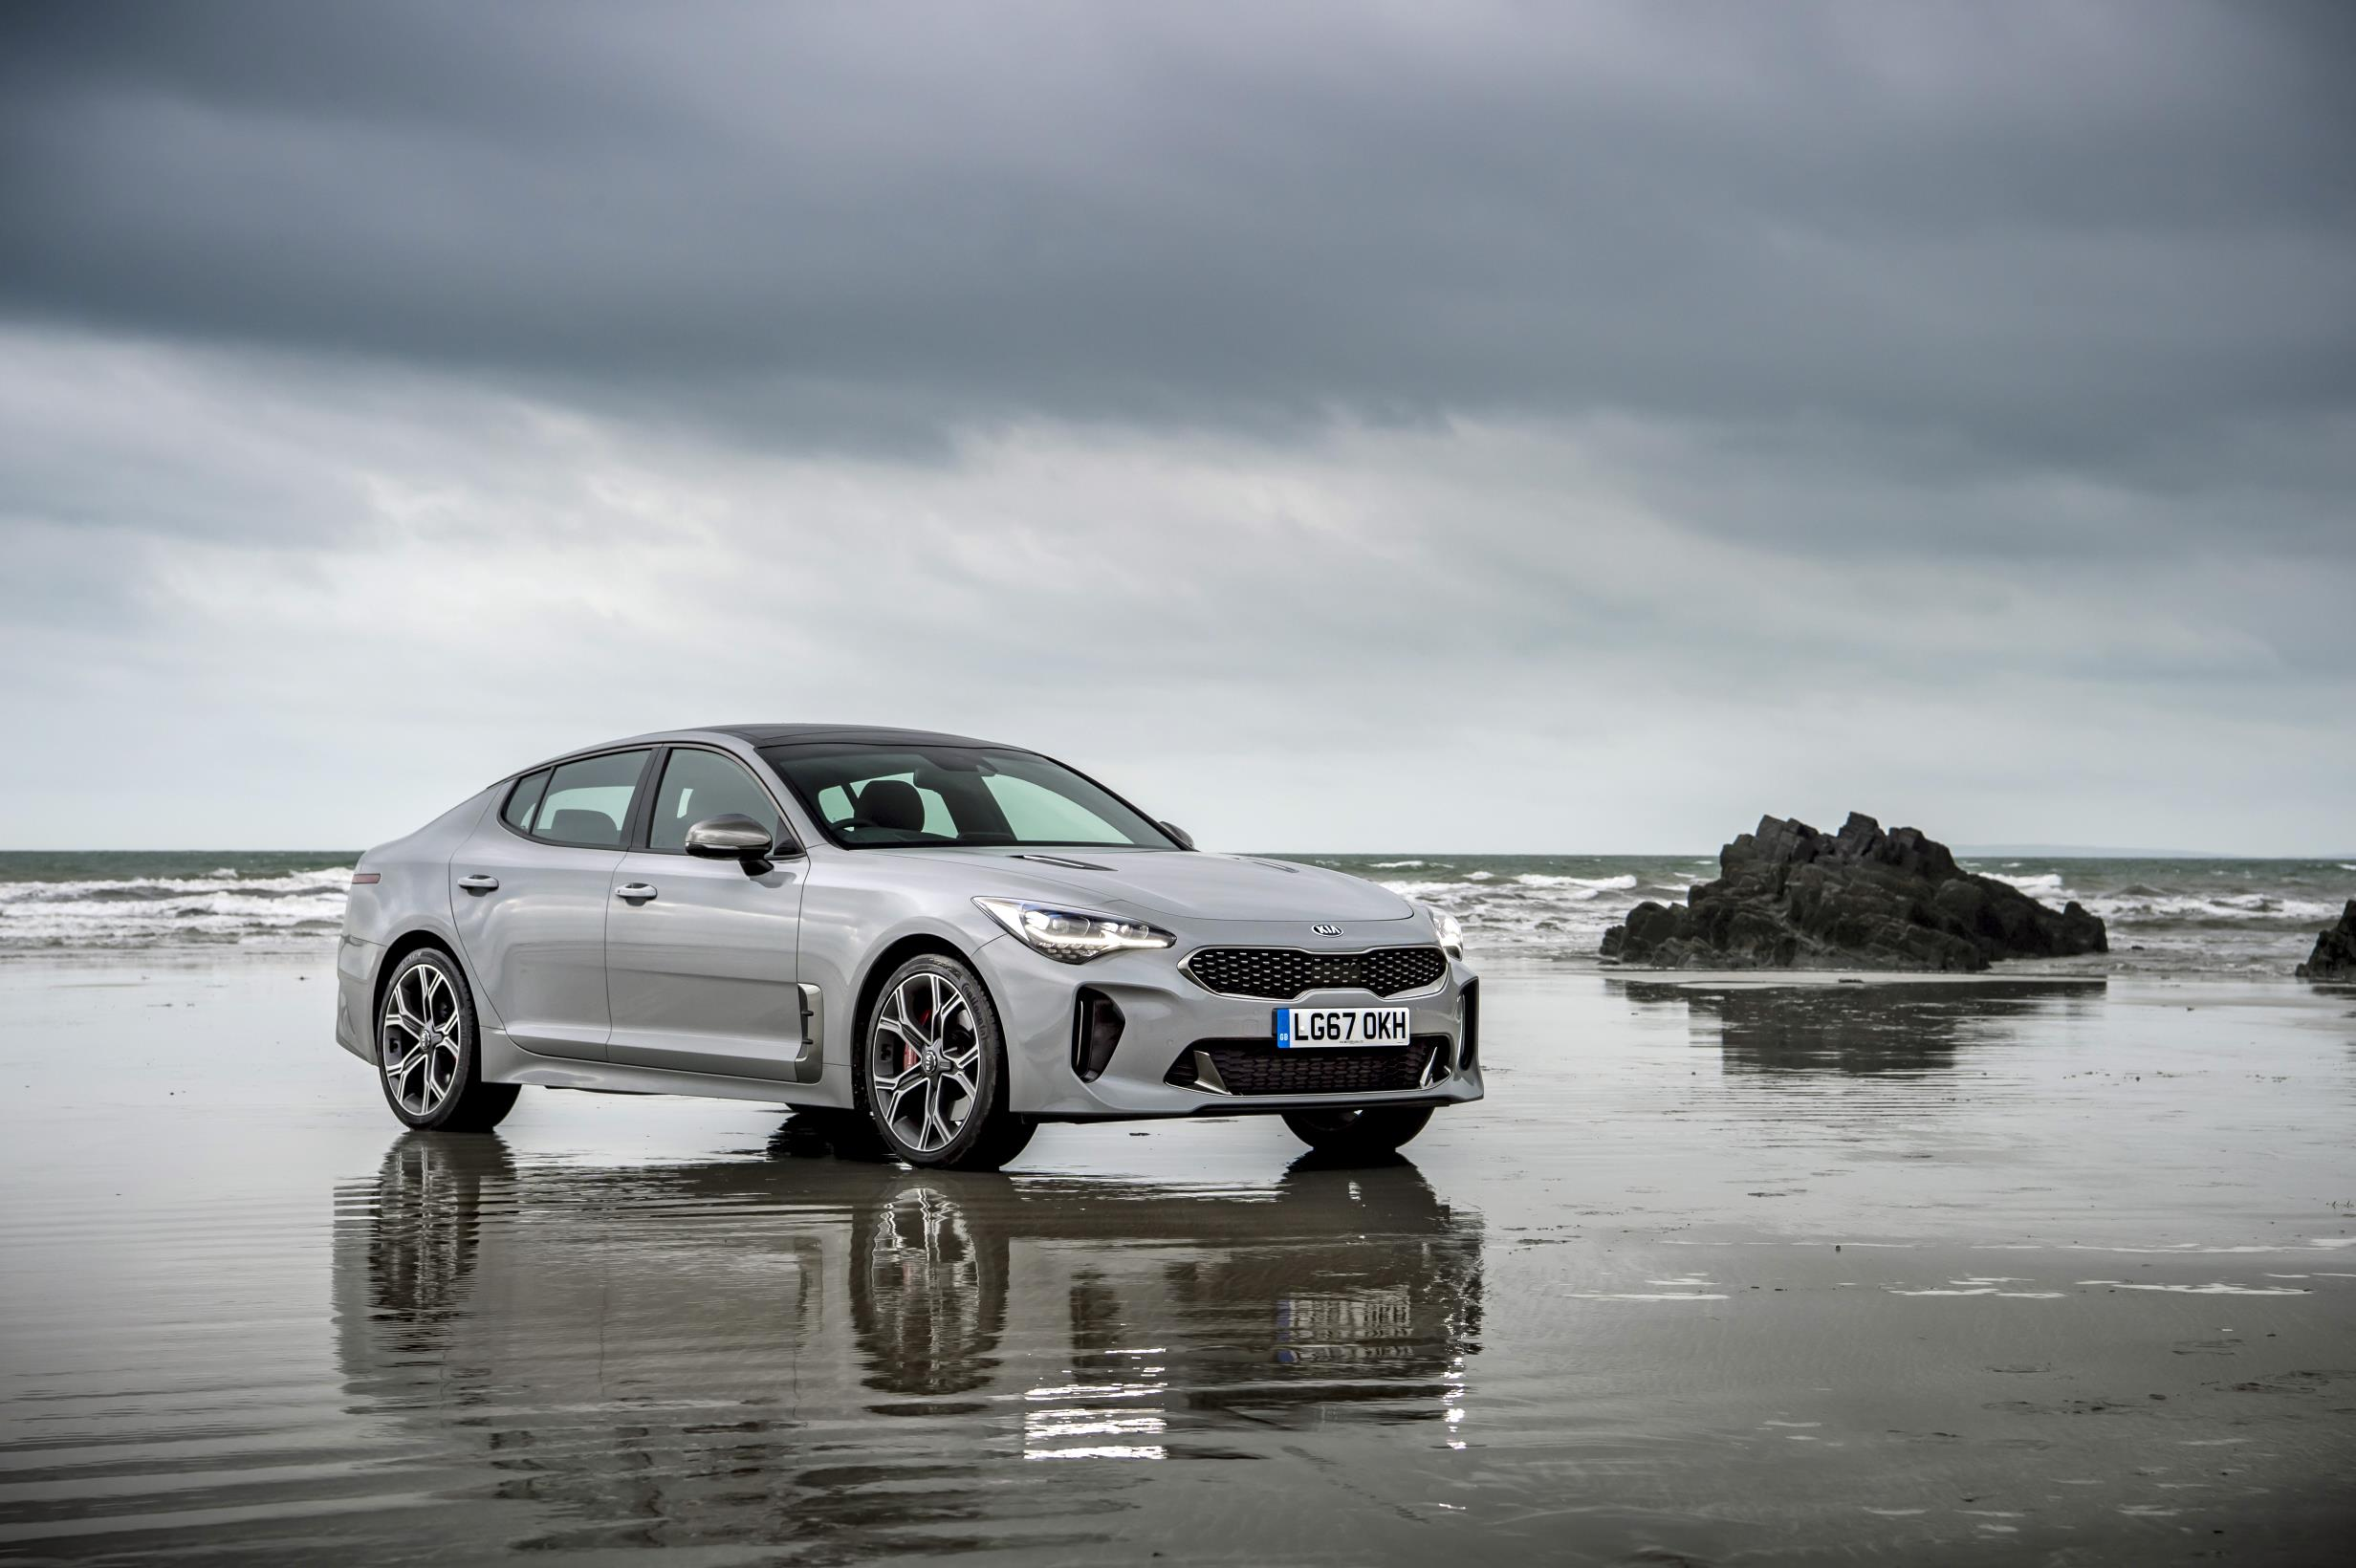 Kia Stinger front view on beach